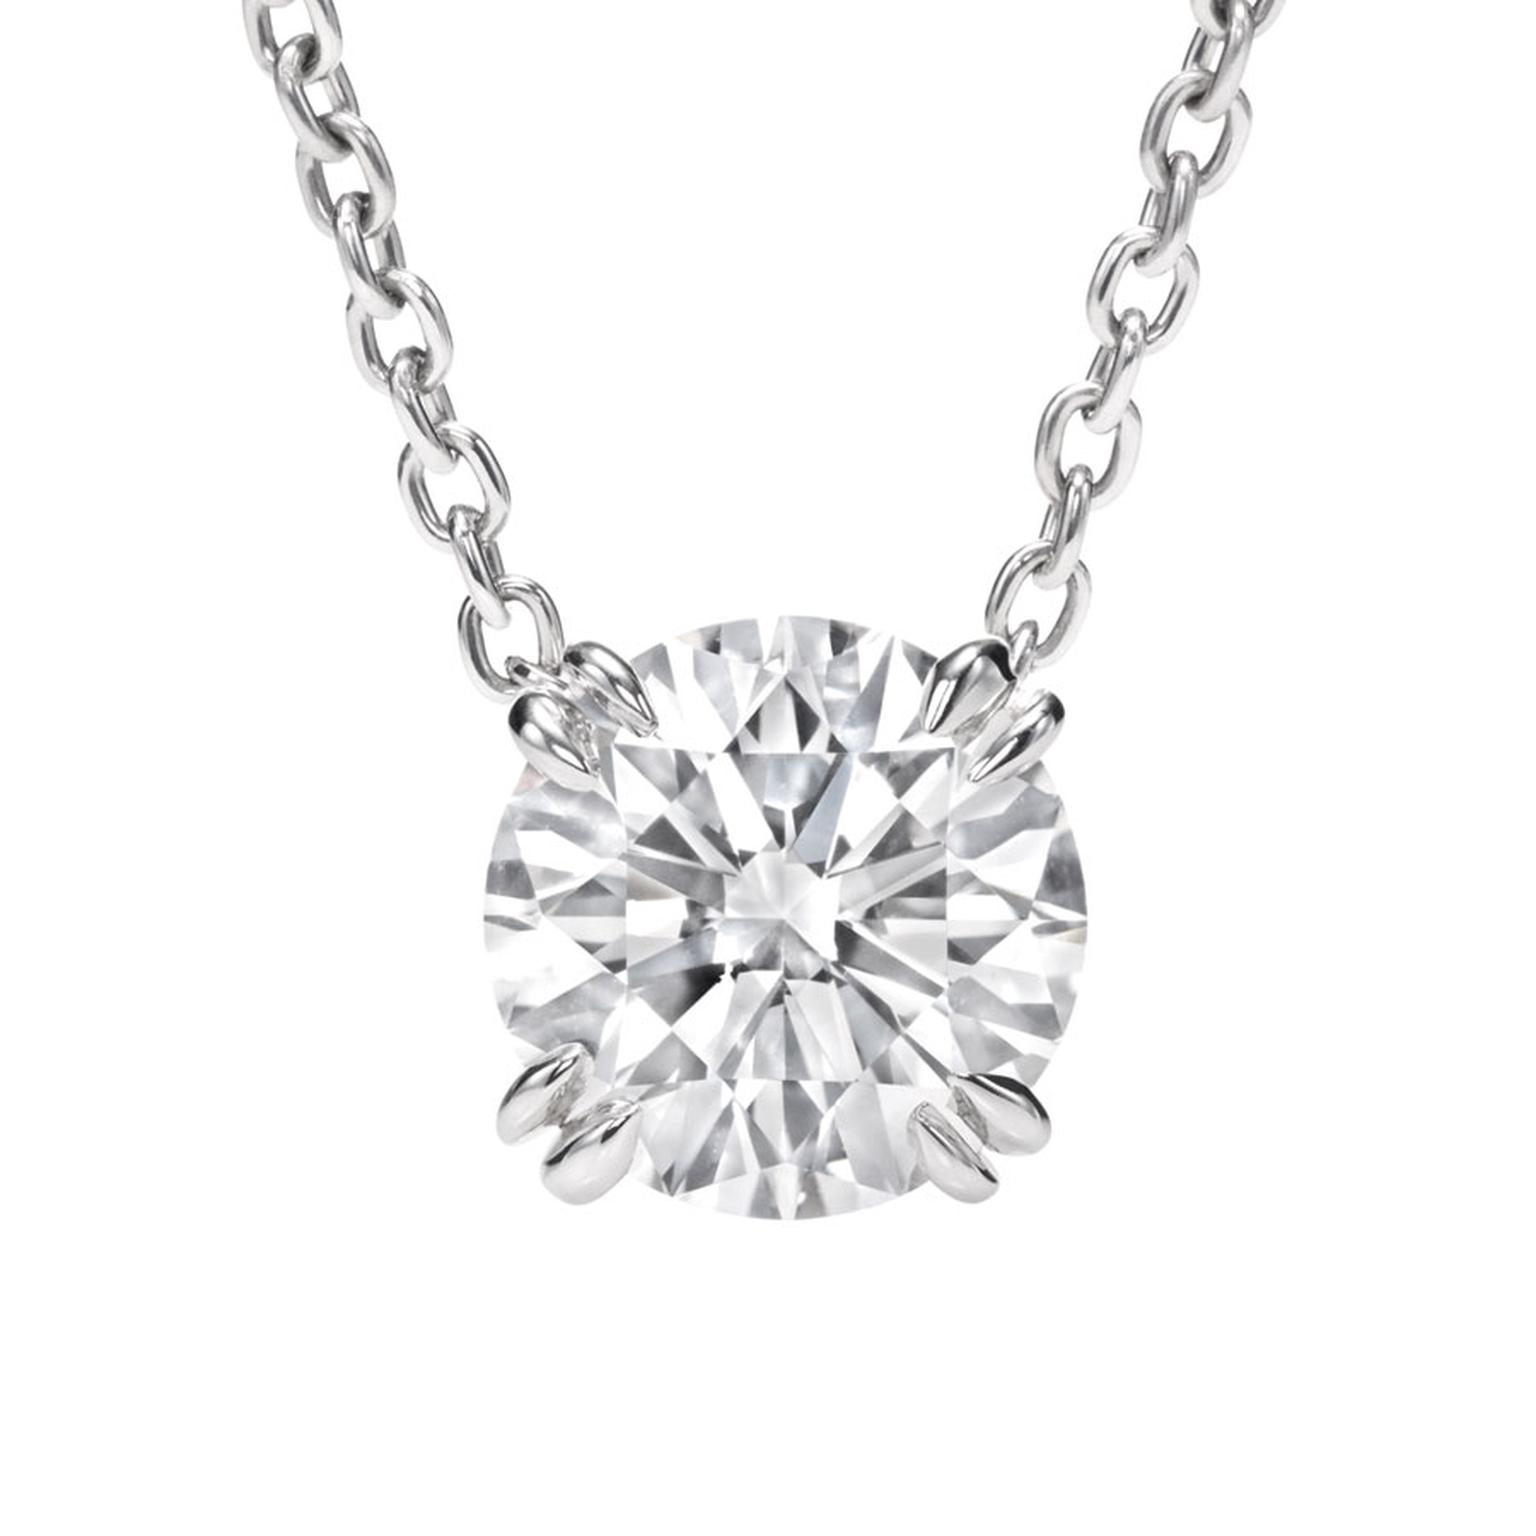 Harry Winston. Round Brilliant diamond pendant